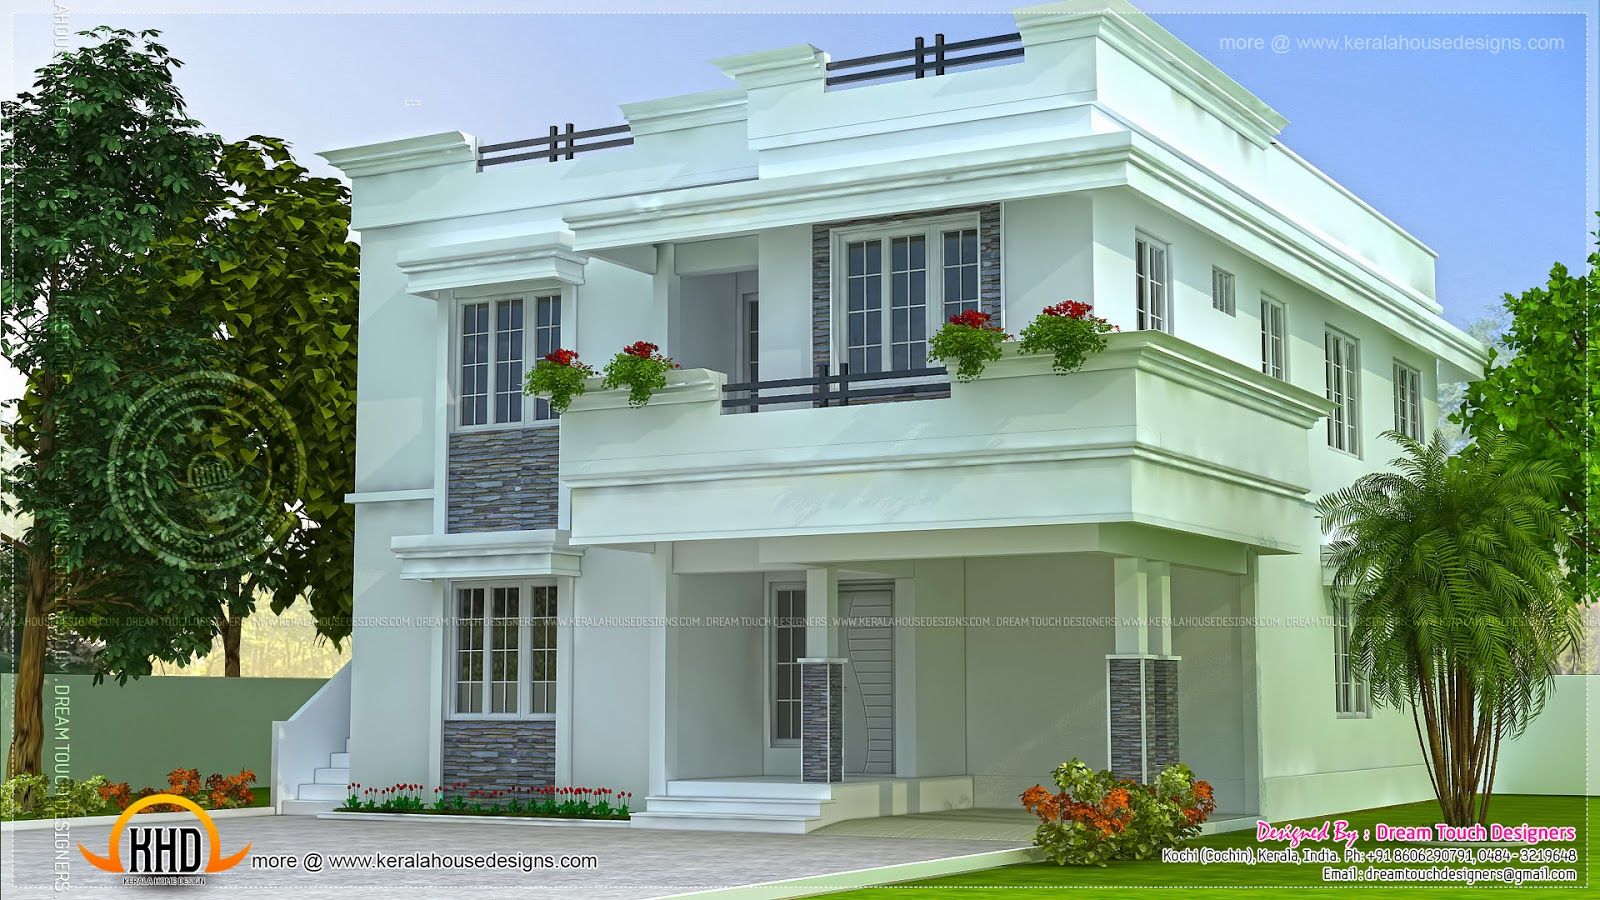 Modern beautiful home design kerala home design and for Beautiful modern home designs